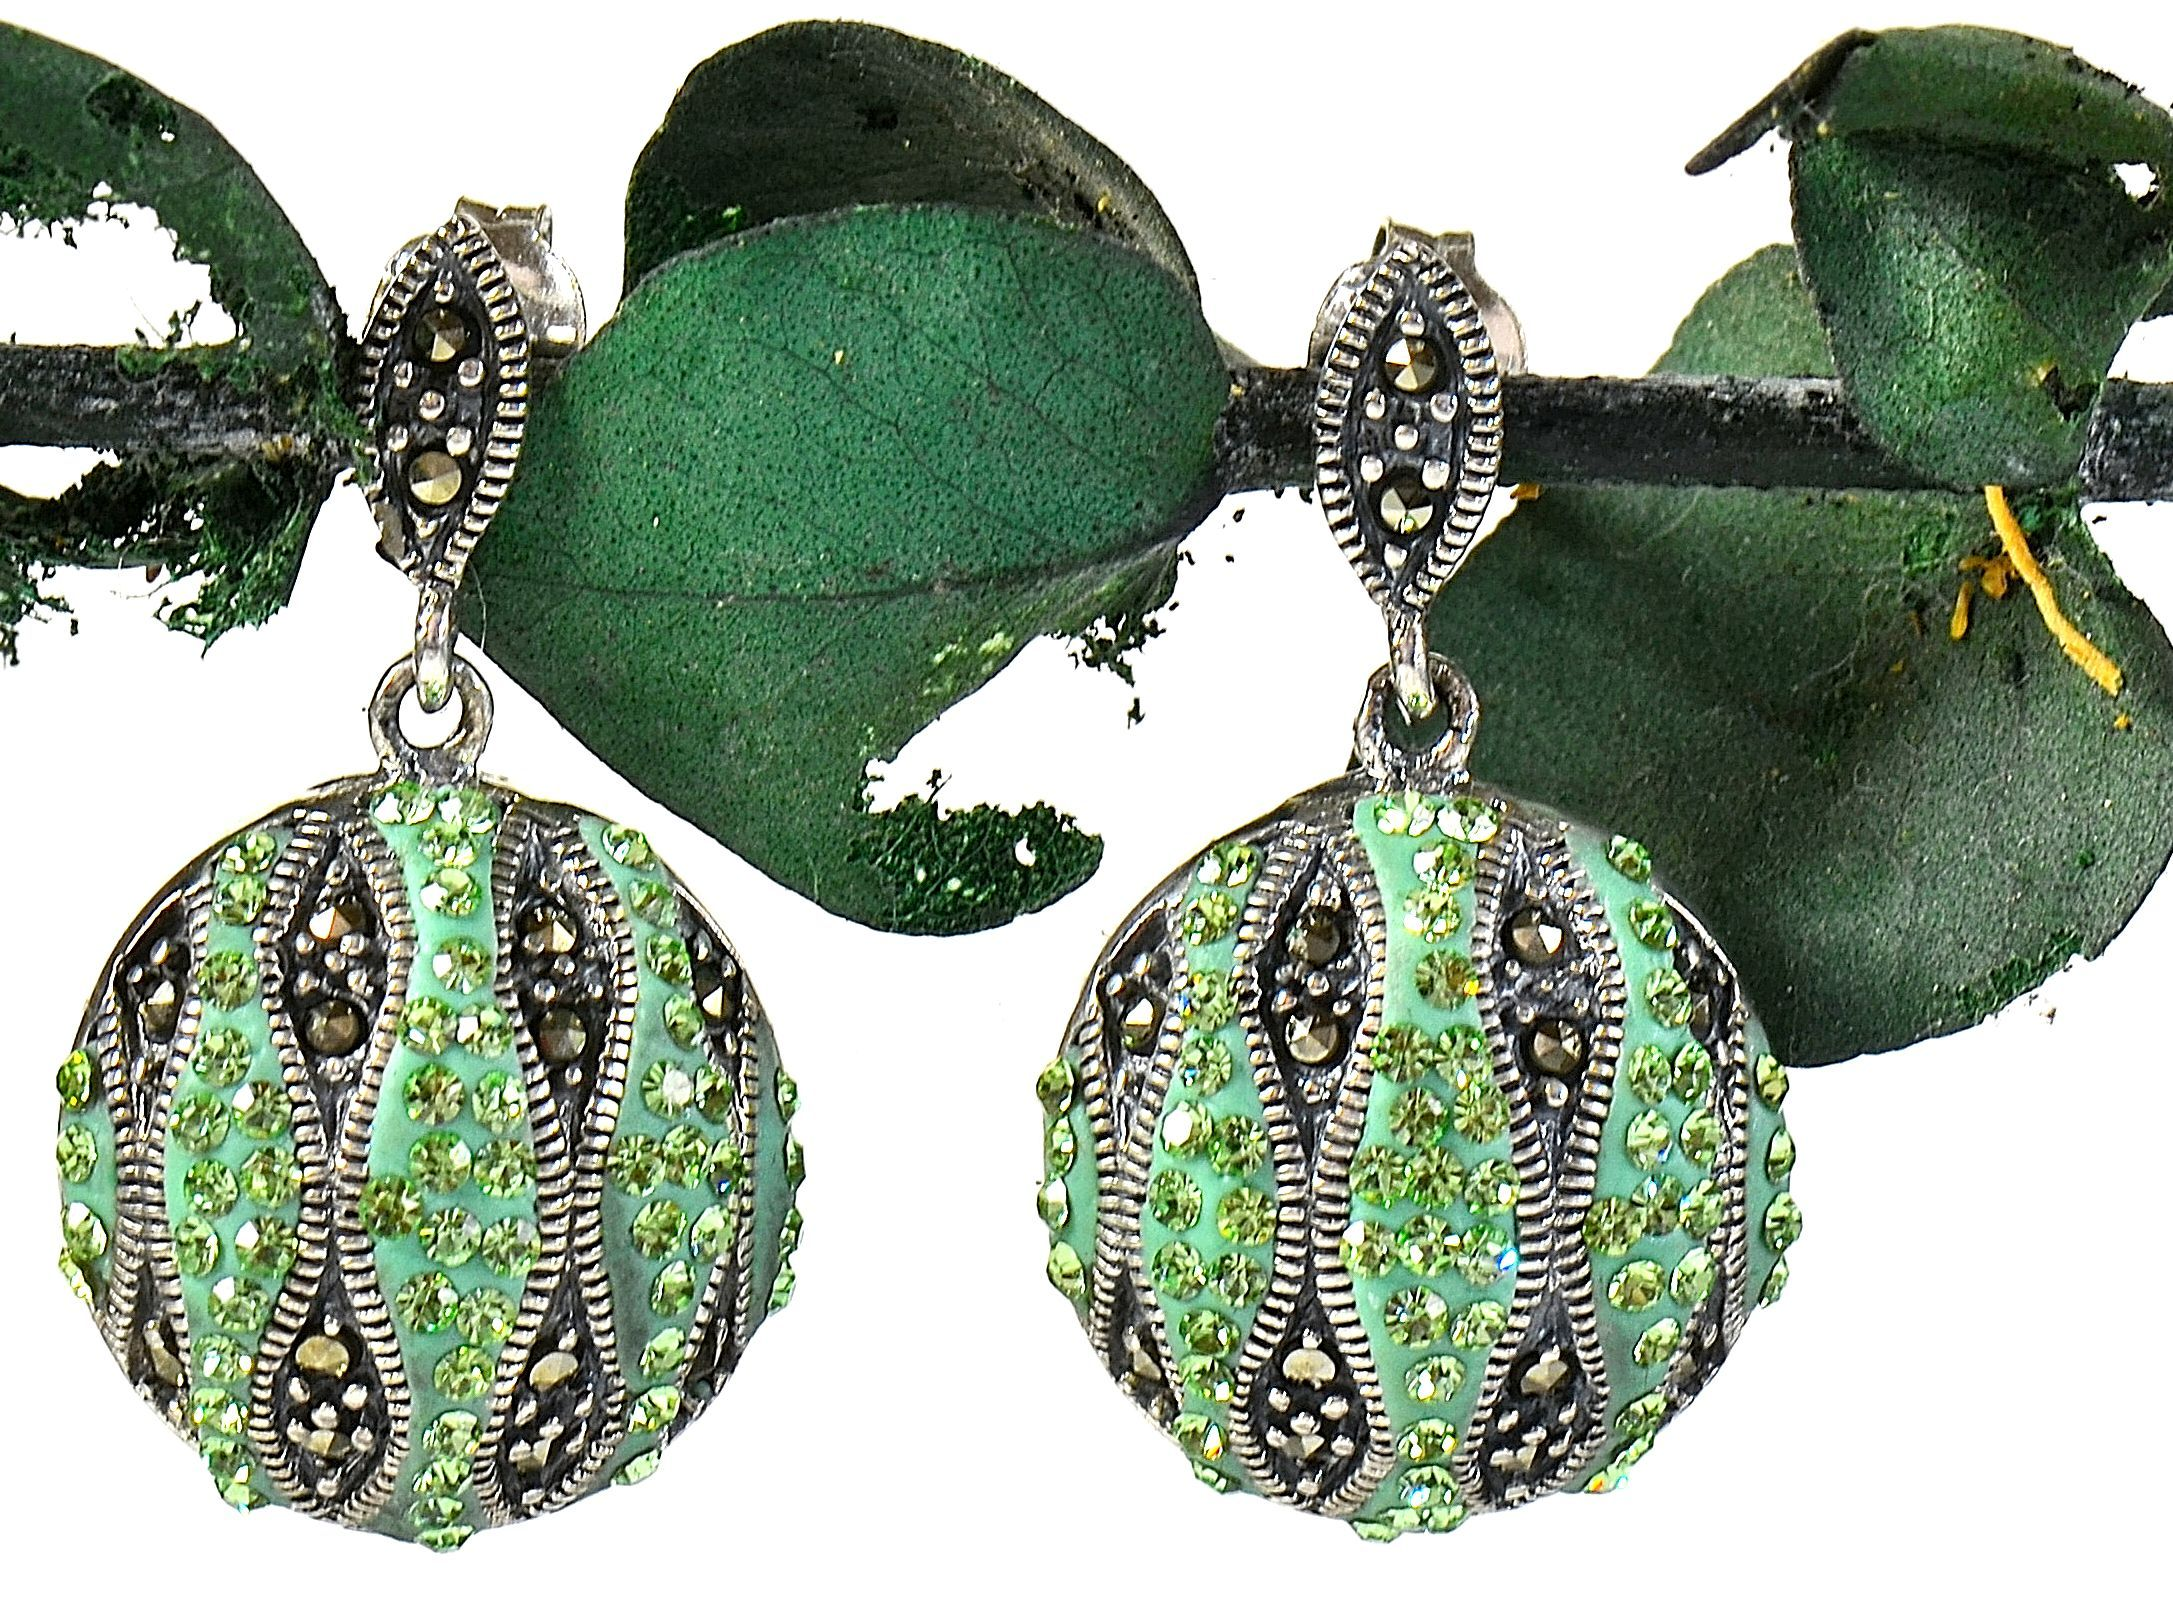 Soleil Green Peridot and Crystal Earrings - green peridot and crystal stripes alternate with marcasite stripes. Silver cording accents separate the colors and outline the curved shape of the stripes. http://simplybeautiful2012.com/soleil-green-peridot-and-crystal-earrings.html#